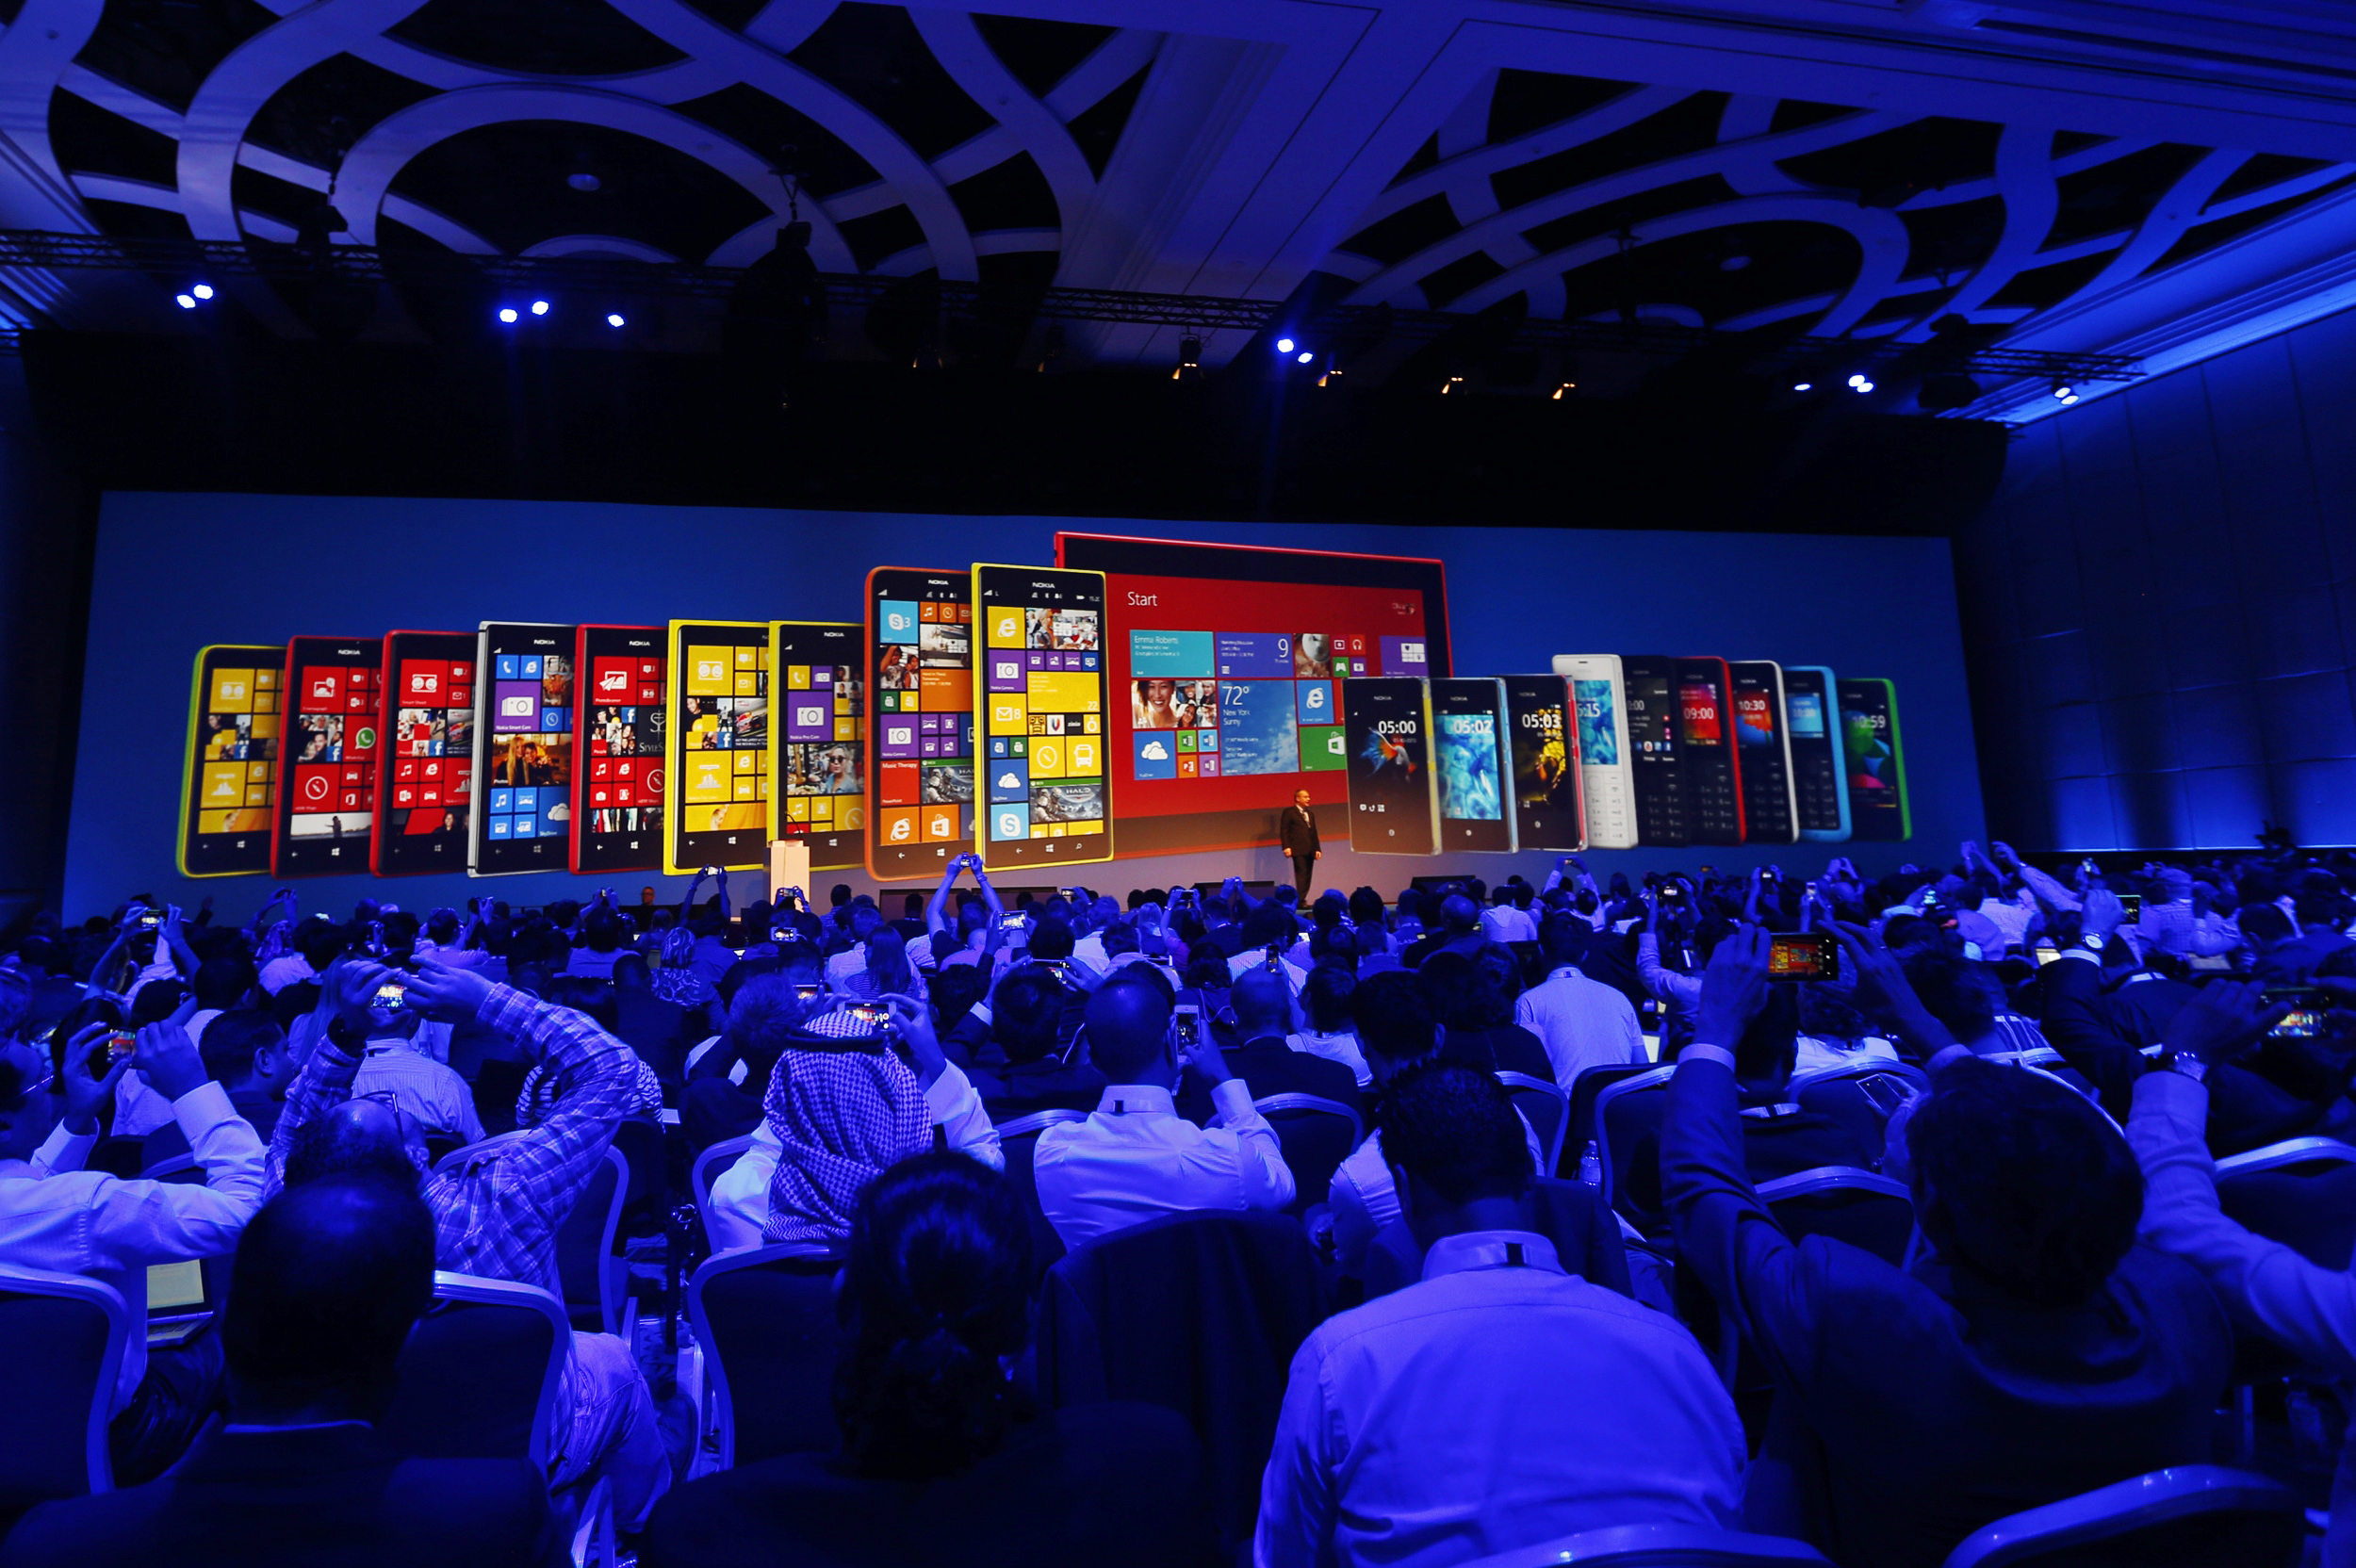 People attend the launch ceremony of Nokia's first tablet and two large-screen smartphones in Abu Dhabi October 22, 2013. Nokia unveiled its first tablet and two large-screen smartphones, known as phablets, at the annual Nokia World event in Abu Dhabi on Tuesday.